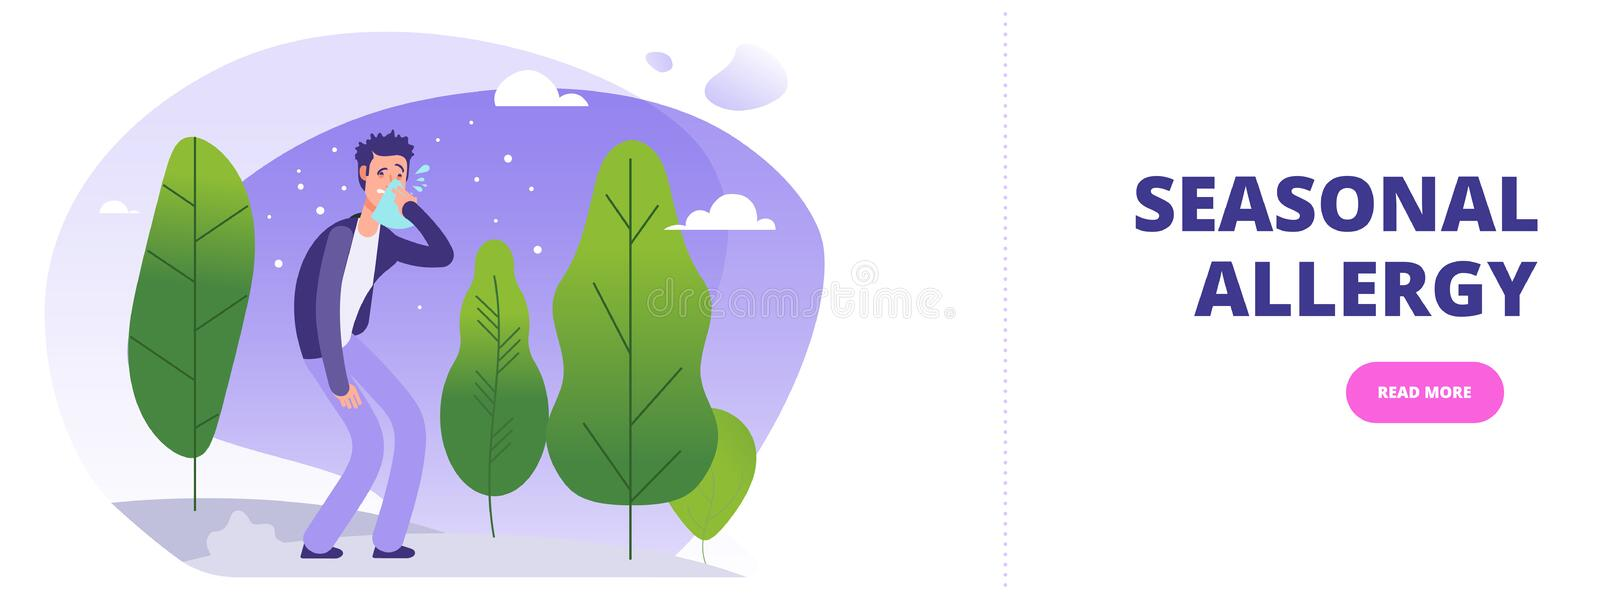 Seasonal allergy banner template. Man with season allergy simptoms in flowering forest vector illustration royalty free illustration